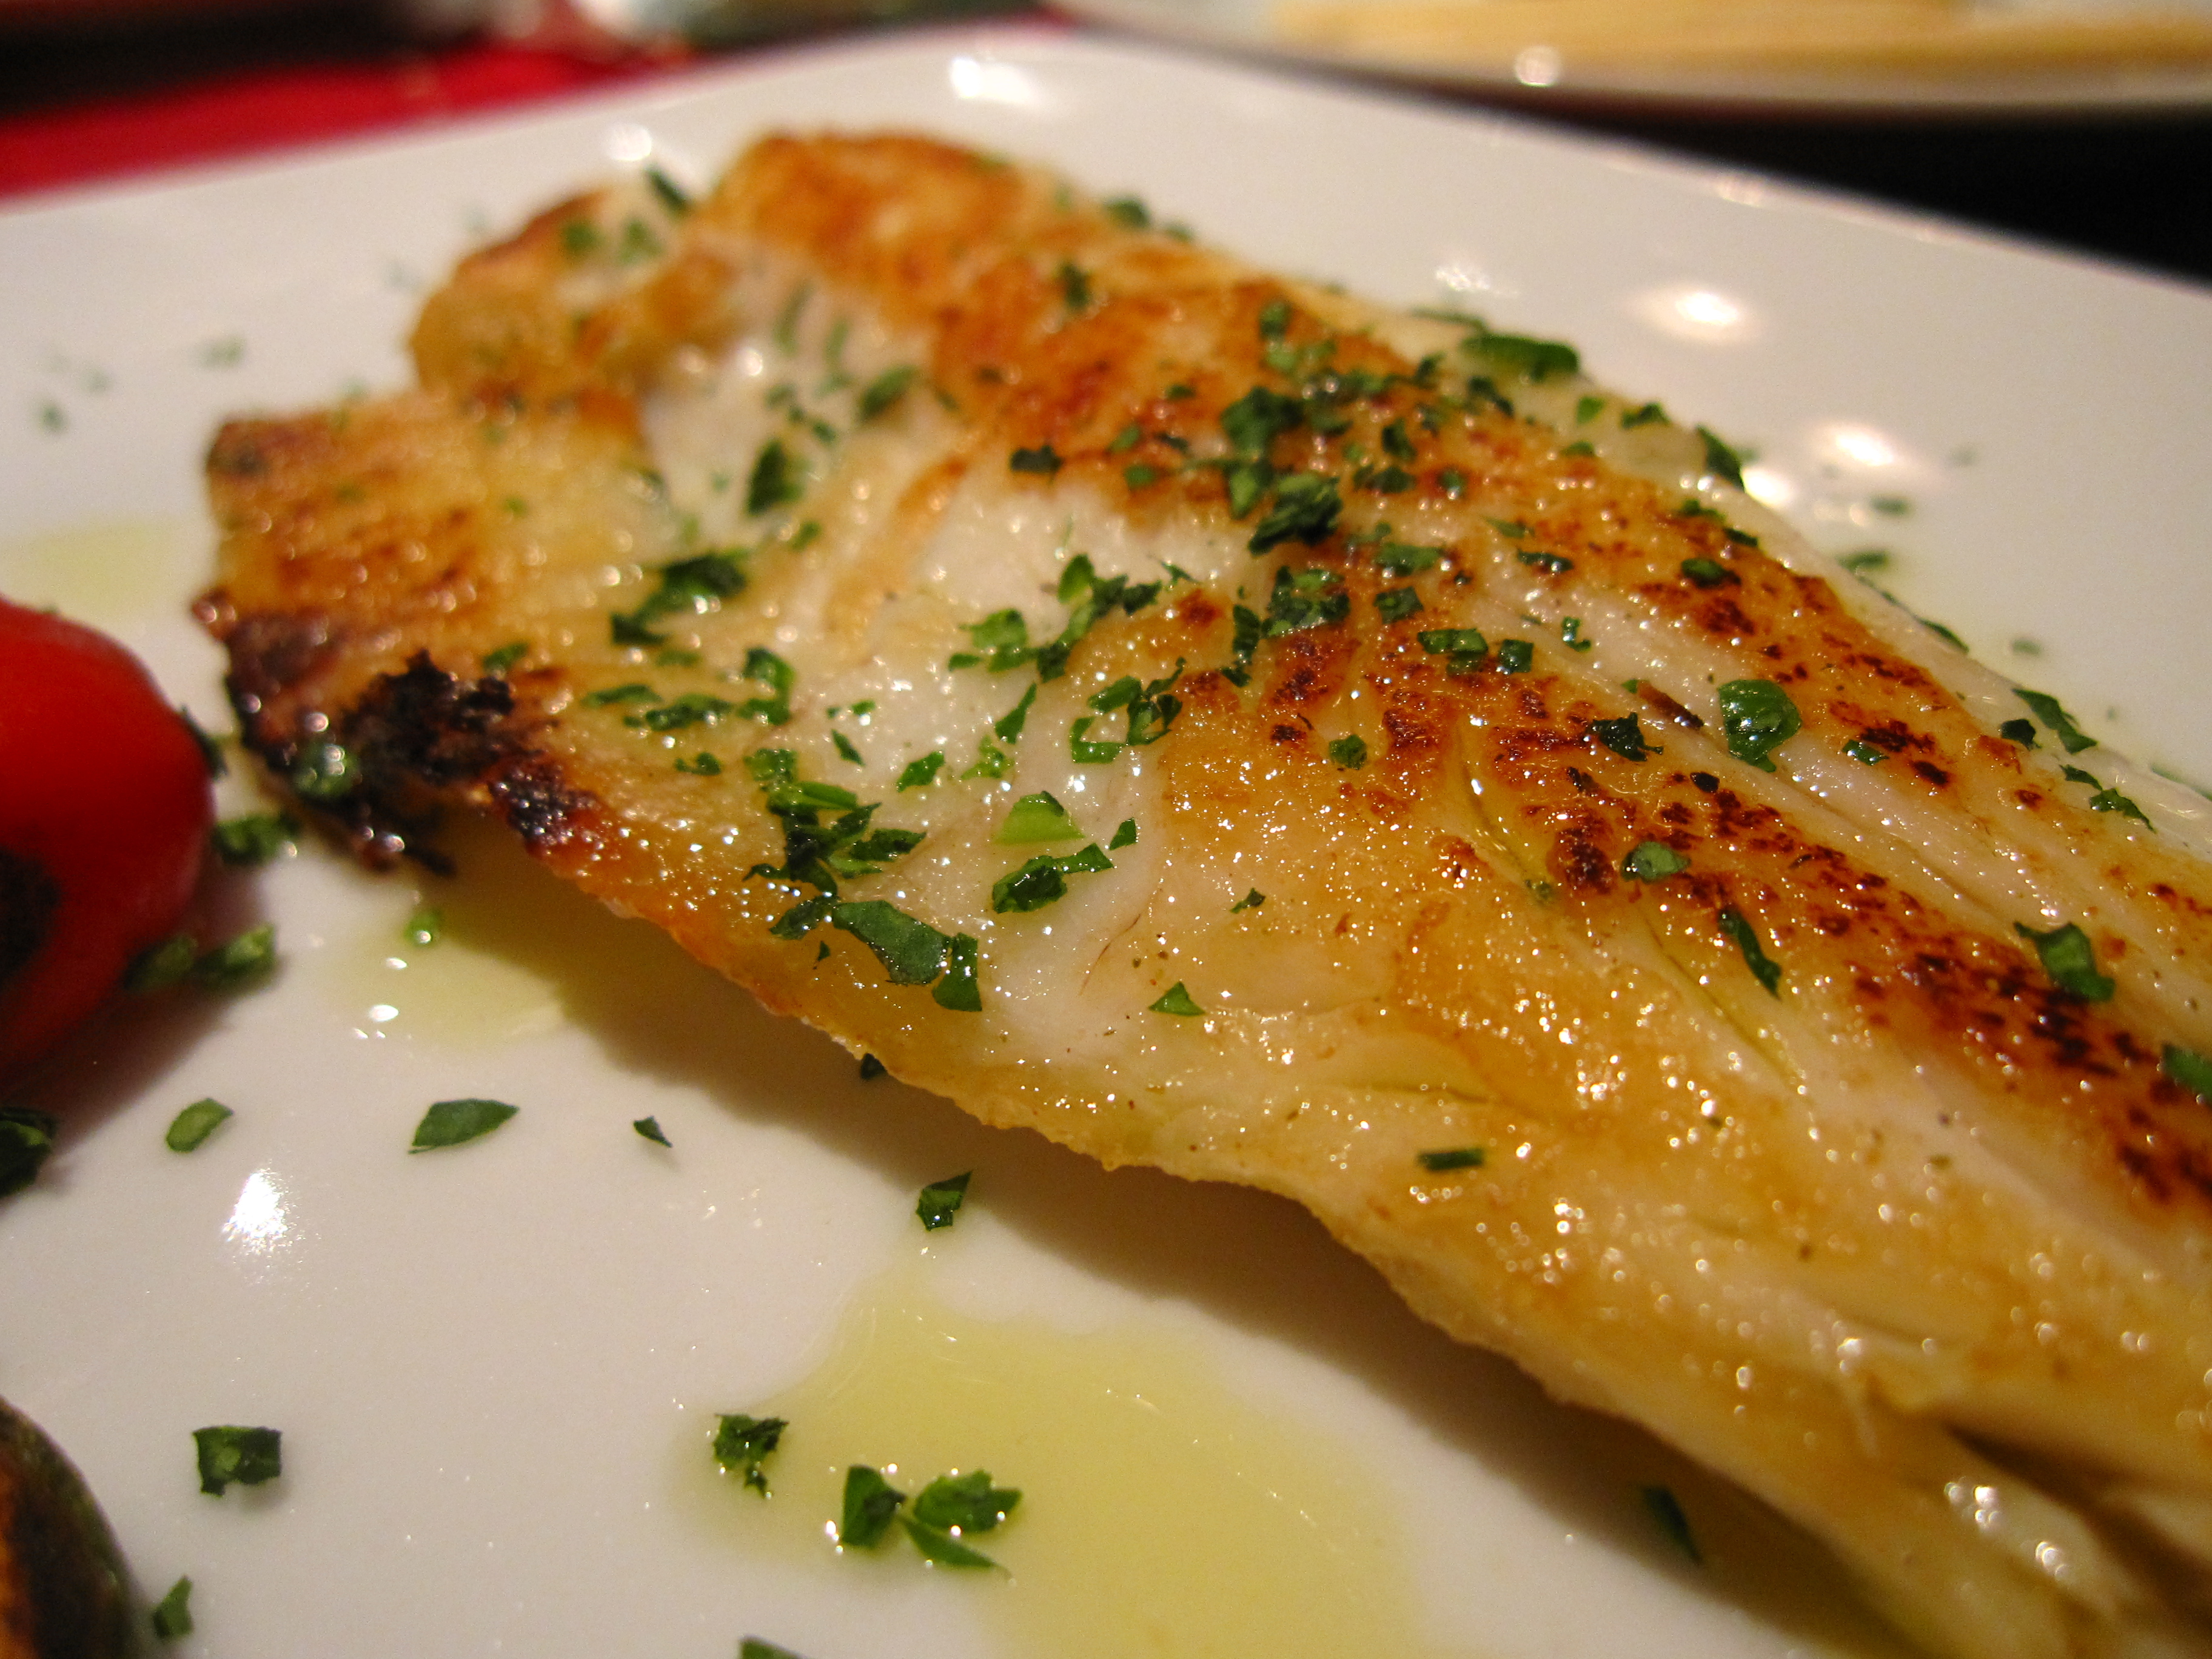 Baked fish in olive oil flickr photo sharing for Oven temperature for fish